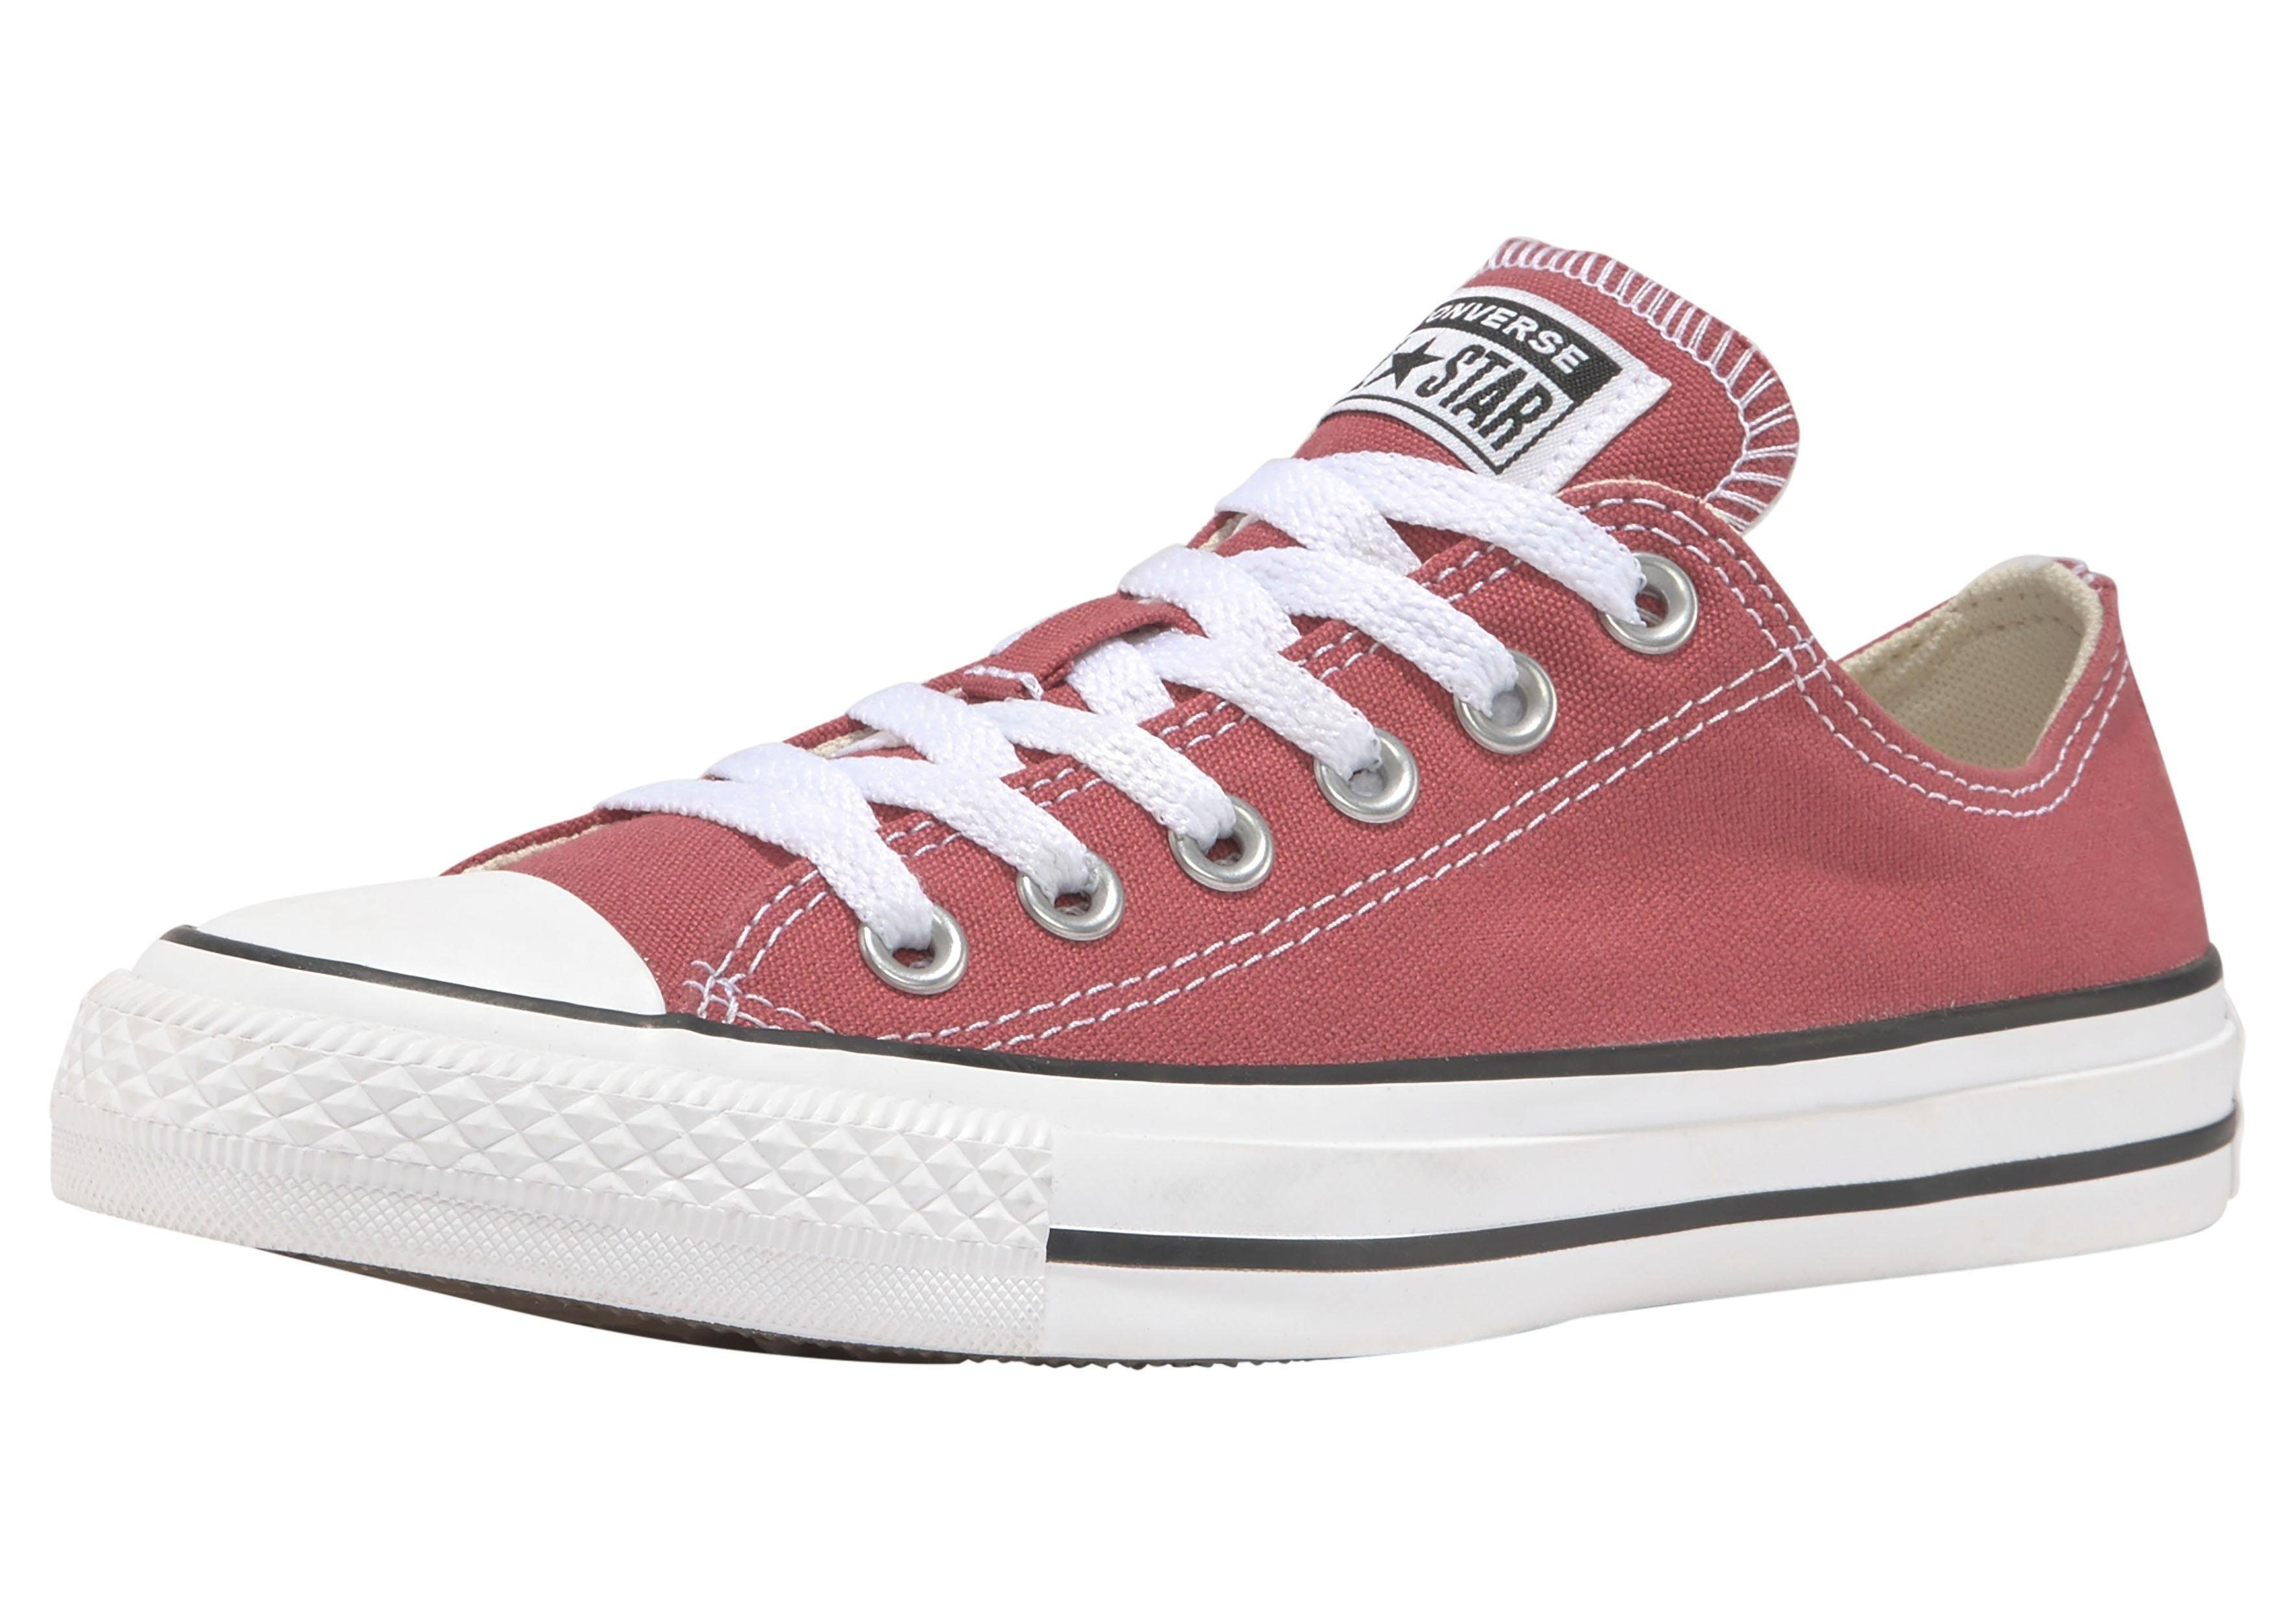 Converse »Chuck Taylor All Star Seasonal Color Ox« Sneaker online kaufen | OTTO